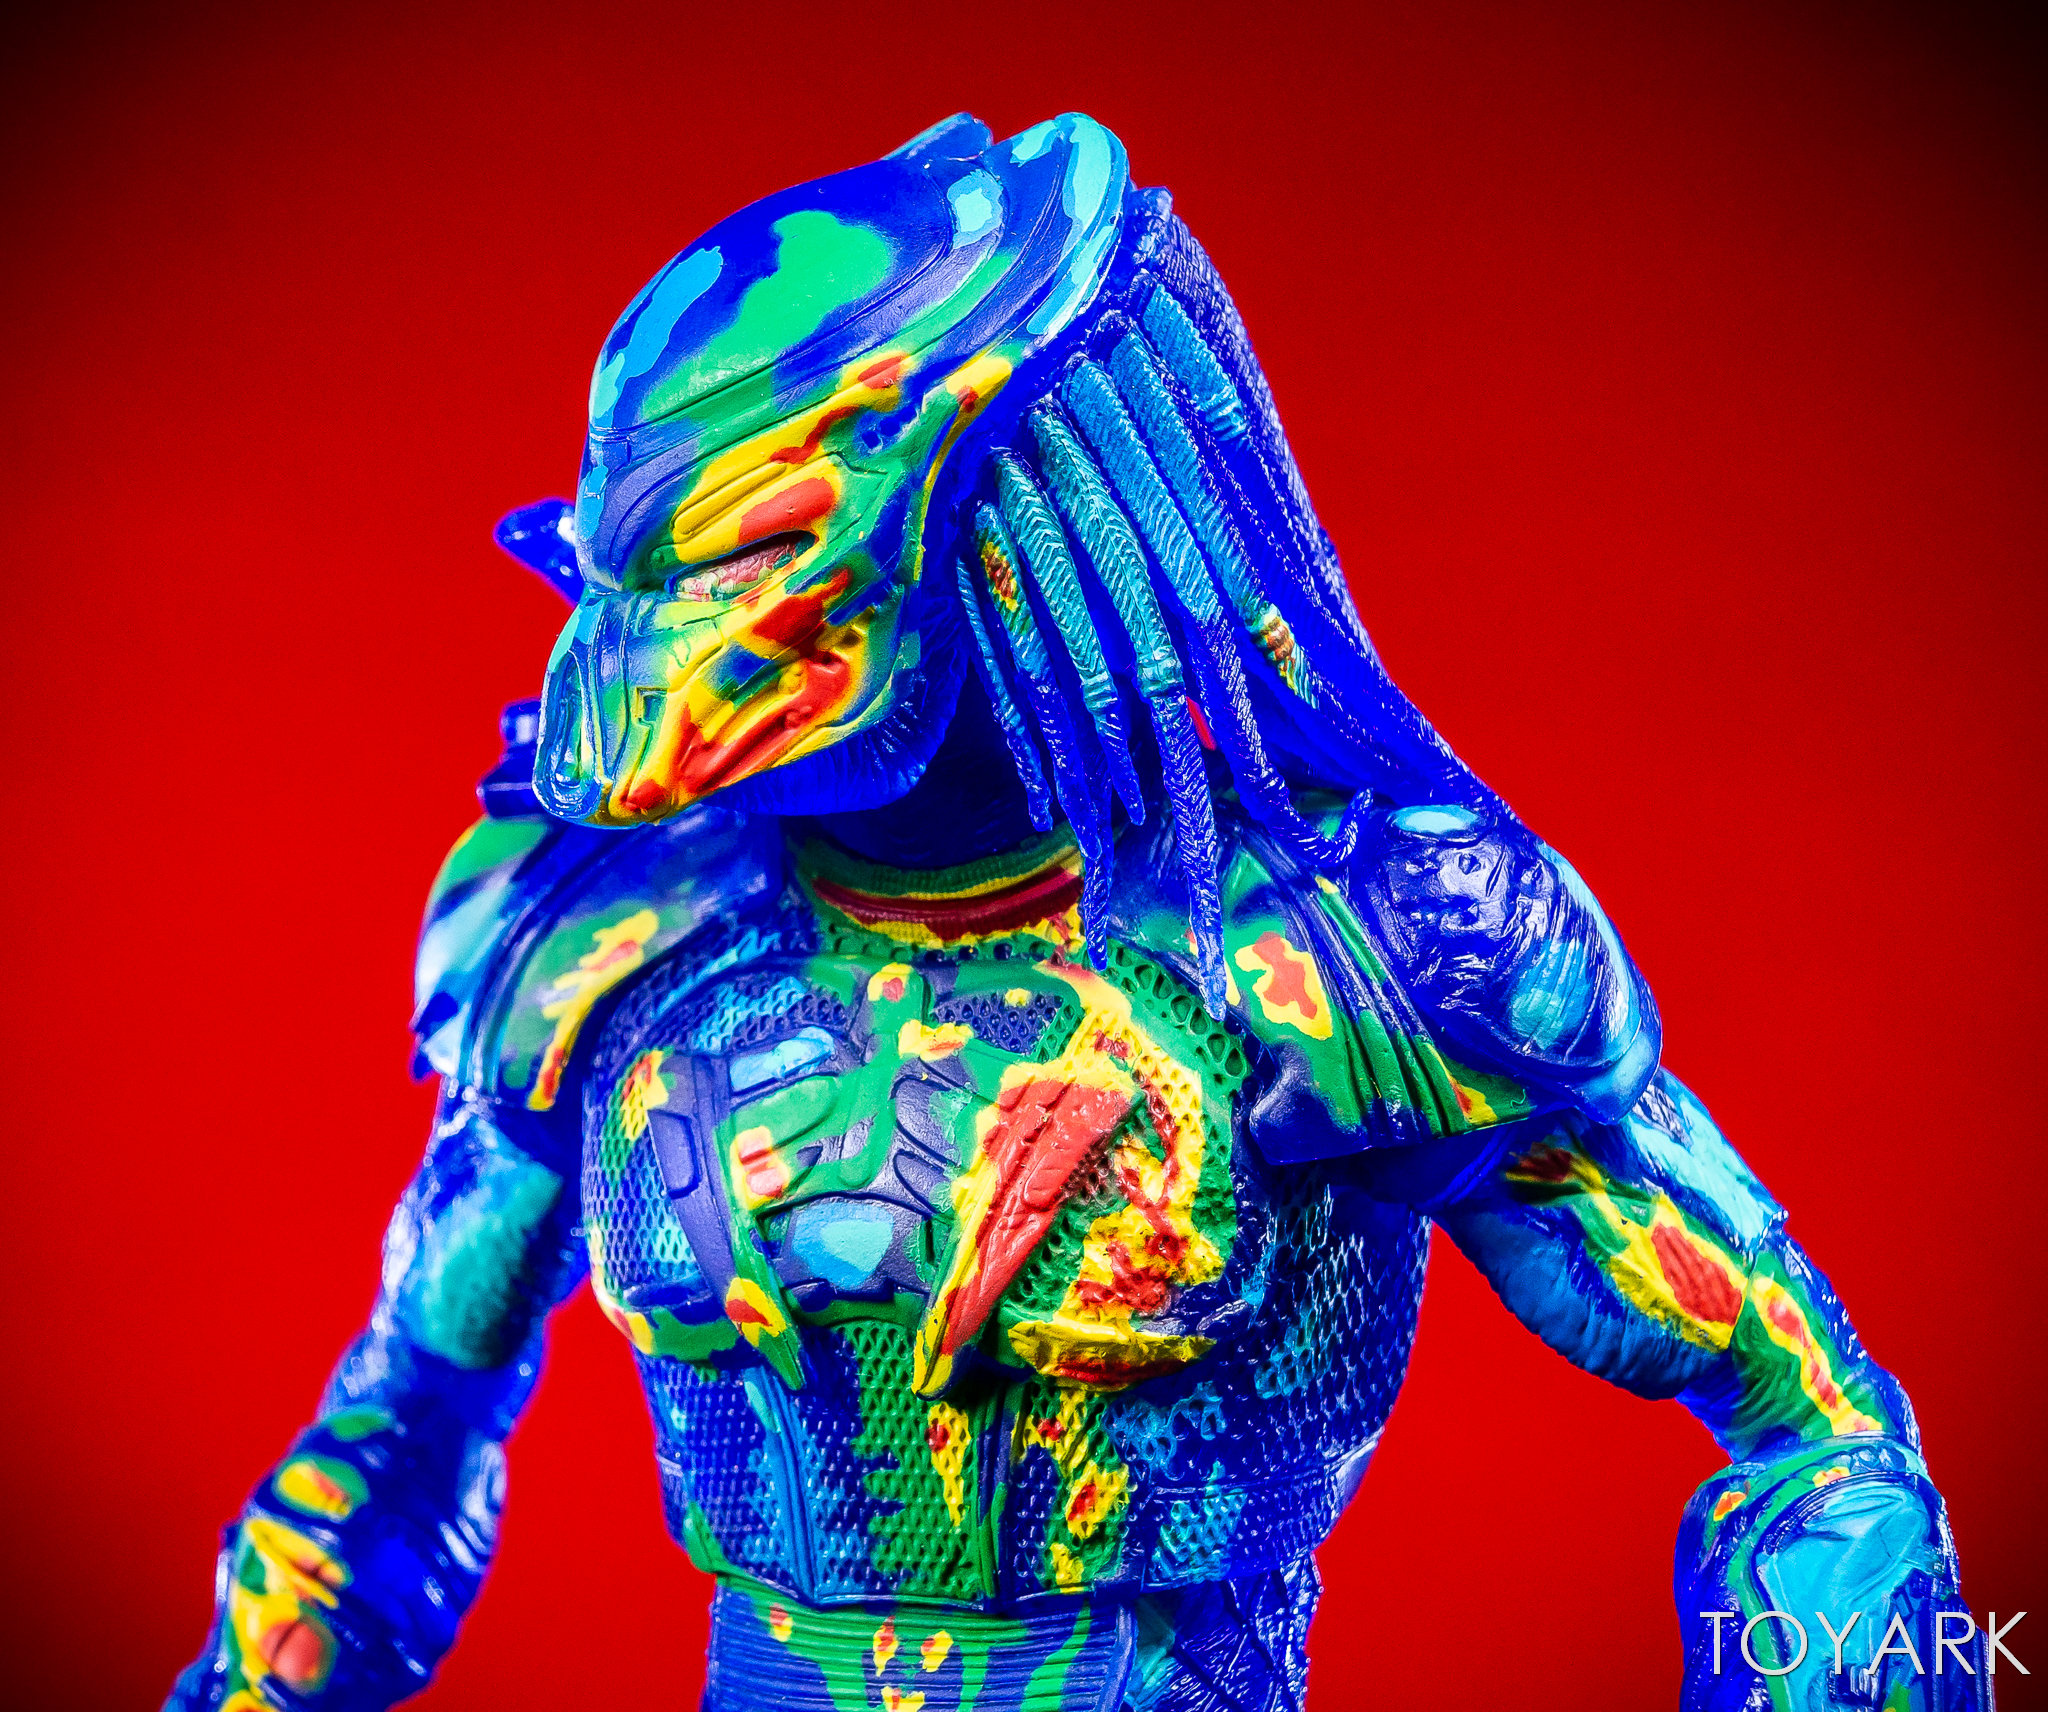 https://news.toyark.com/wp-content/uploads/sites/4/2018/12/NECA-Predator-2018-Thermal-Vision-Predator-011.jpg